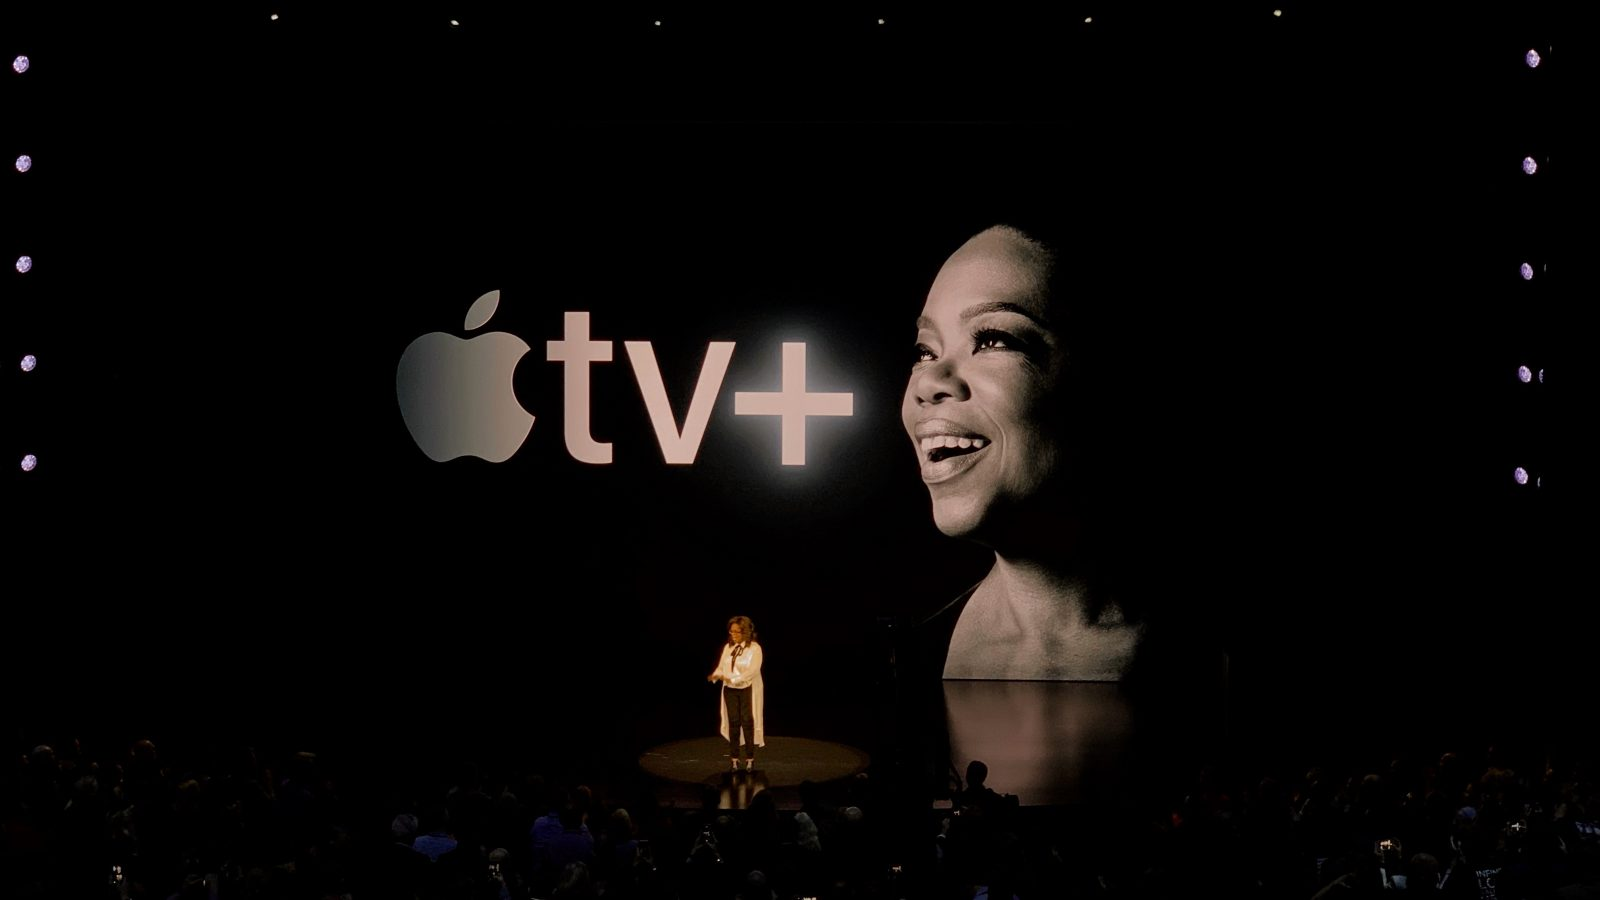 Oprah teases potential interview series return with Apple TV+, says partnership replaced '60 Minutes' deal